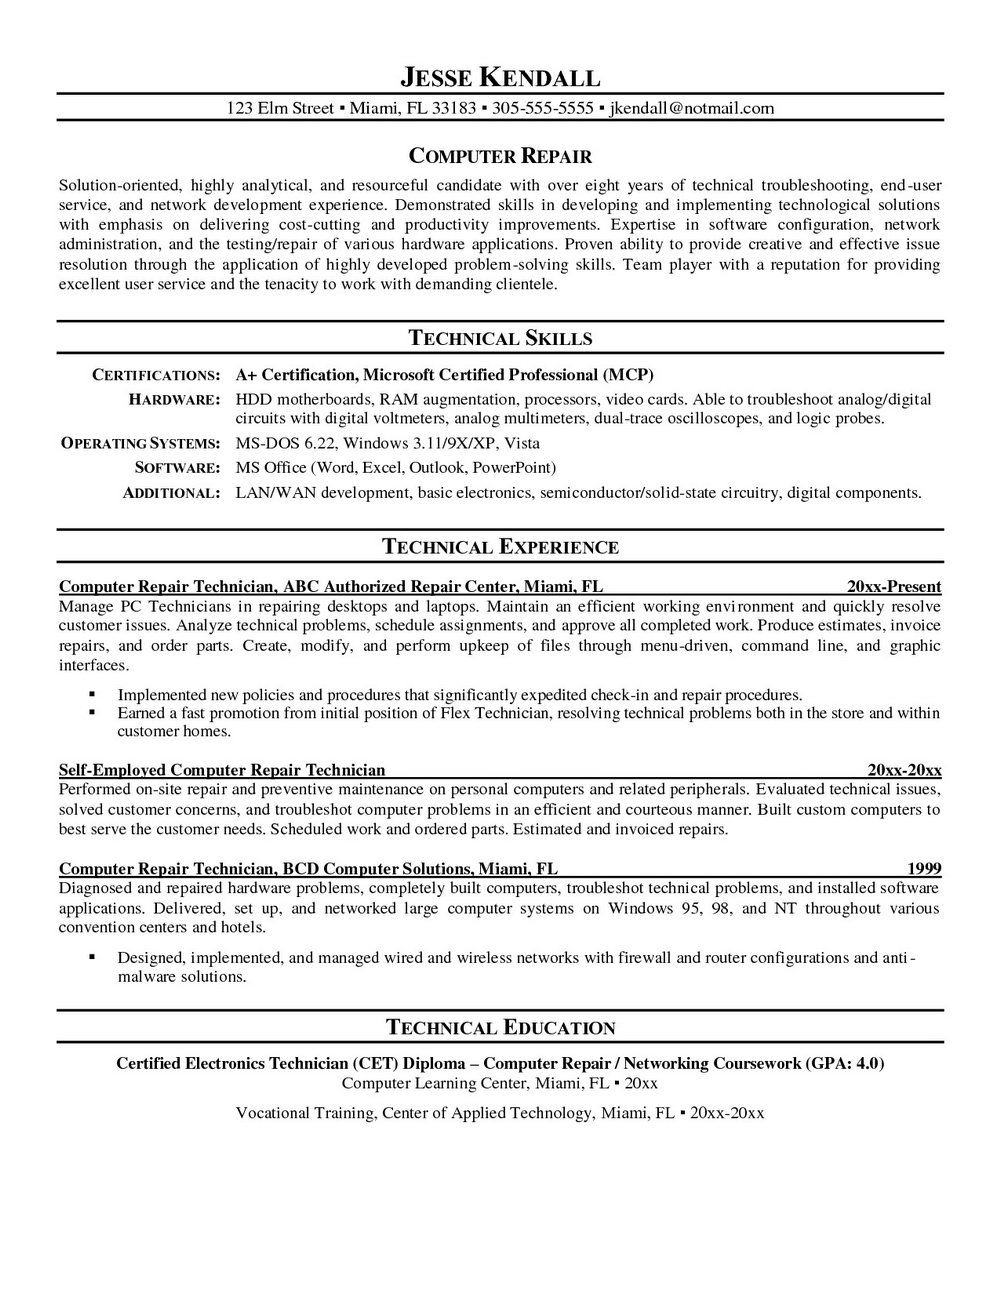 Resume For Computer Technician Job